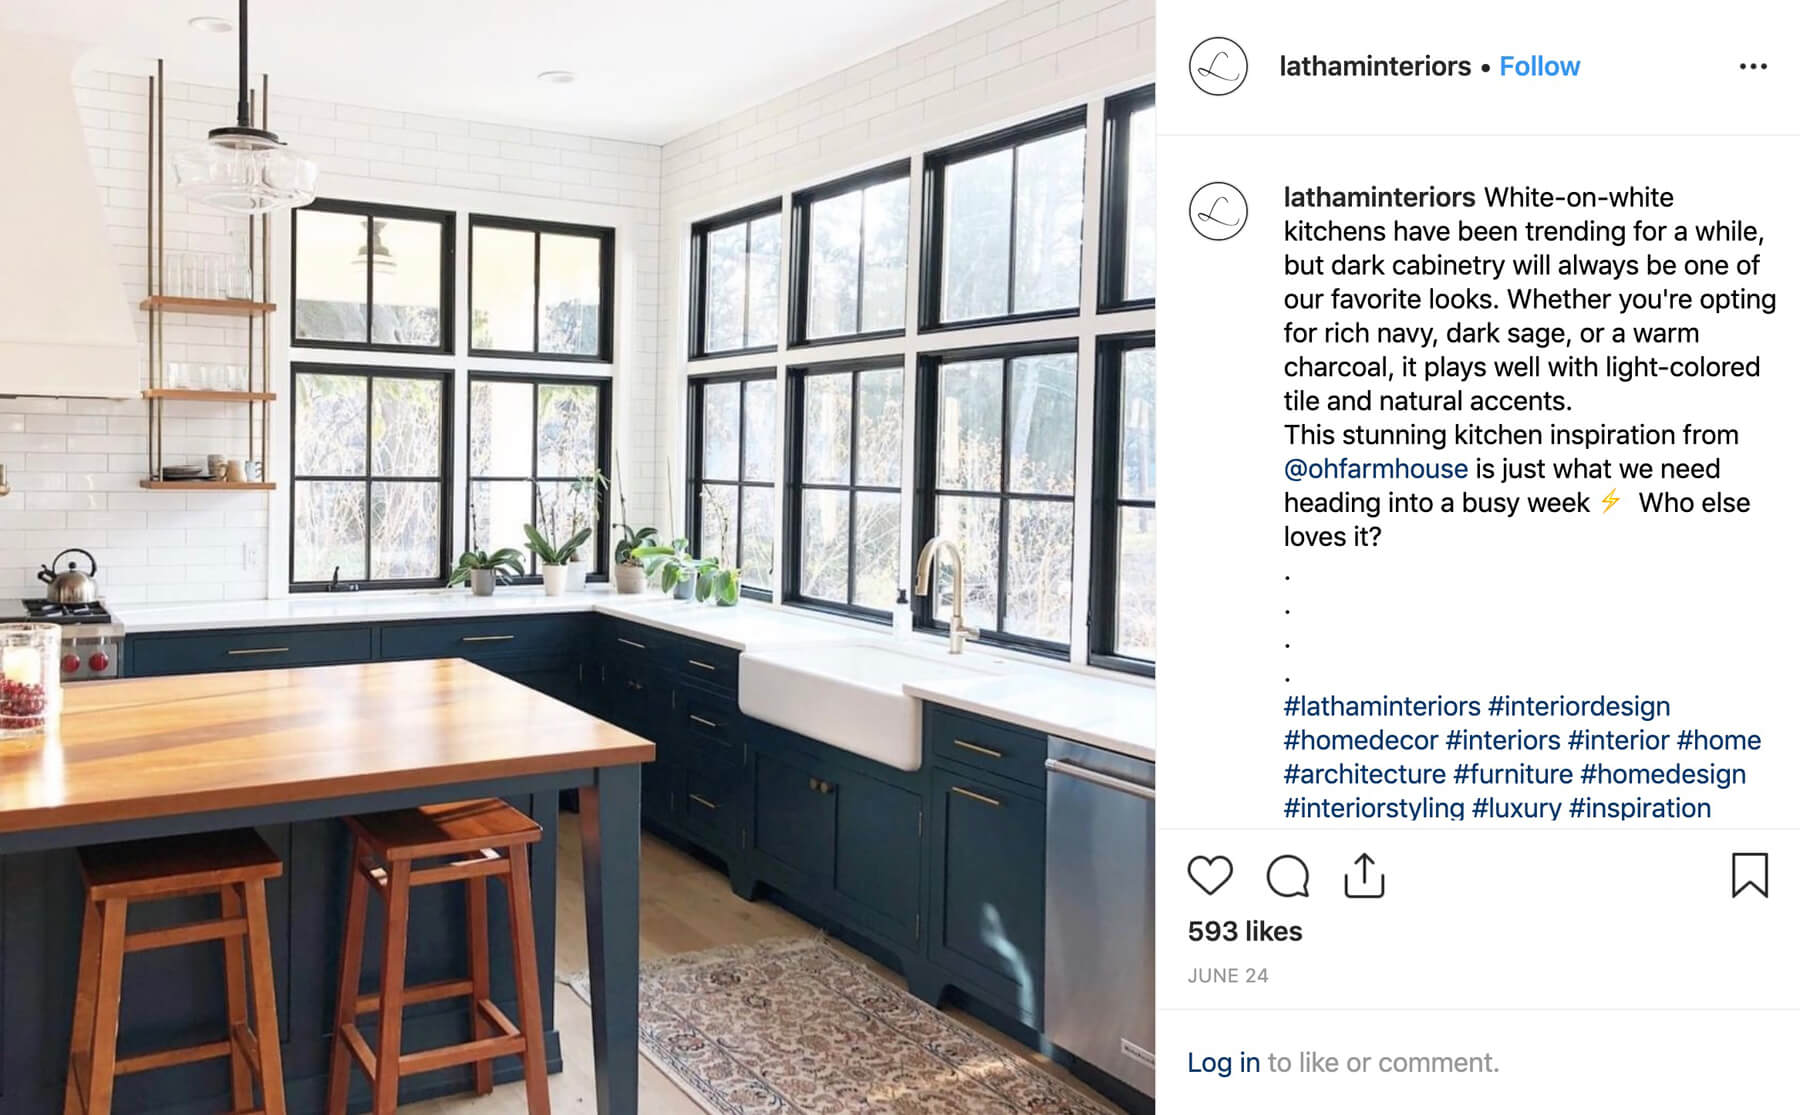 Discovery - 217x increase in impressionsWe curated a rotating set of algorithm-tested hashtags for maximizing Latham Interiors' reach on Instagram. With the right strategy, we were able to increase hashtag impressions from 60 to 14,000.